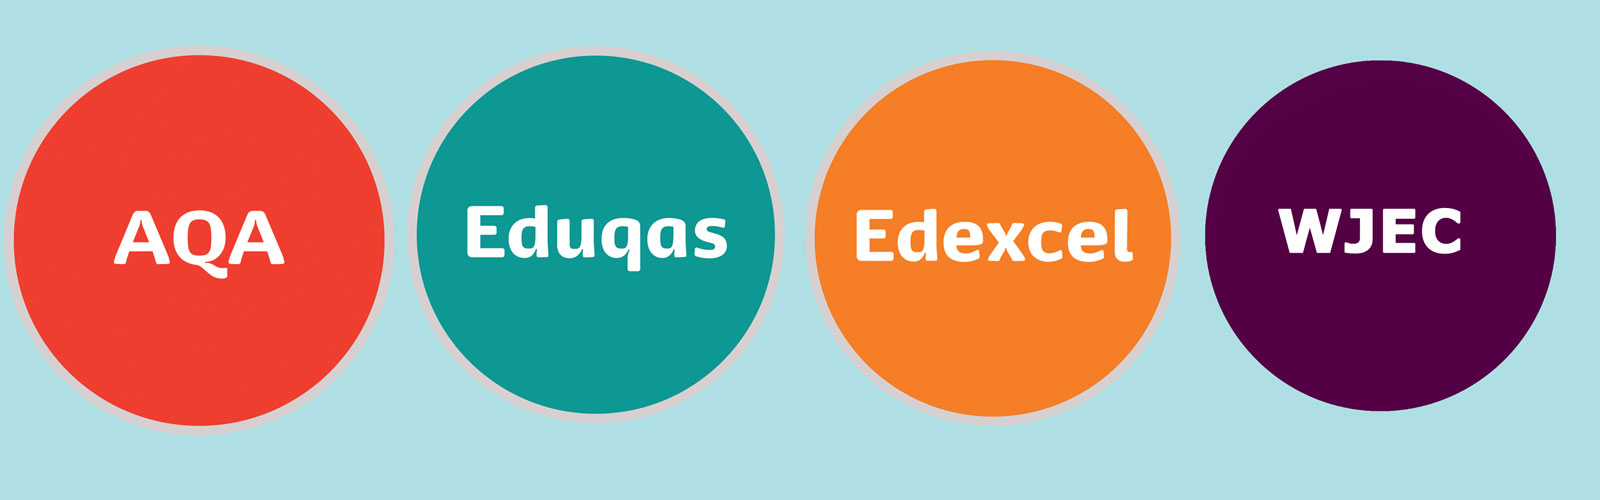 CAFOD resources for GCSE RE for AQA, Eduqas, Edexcel and WJEC.